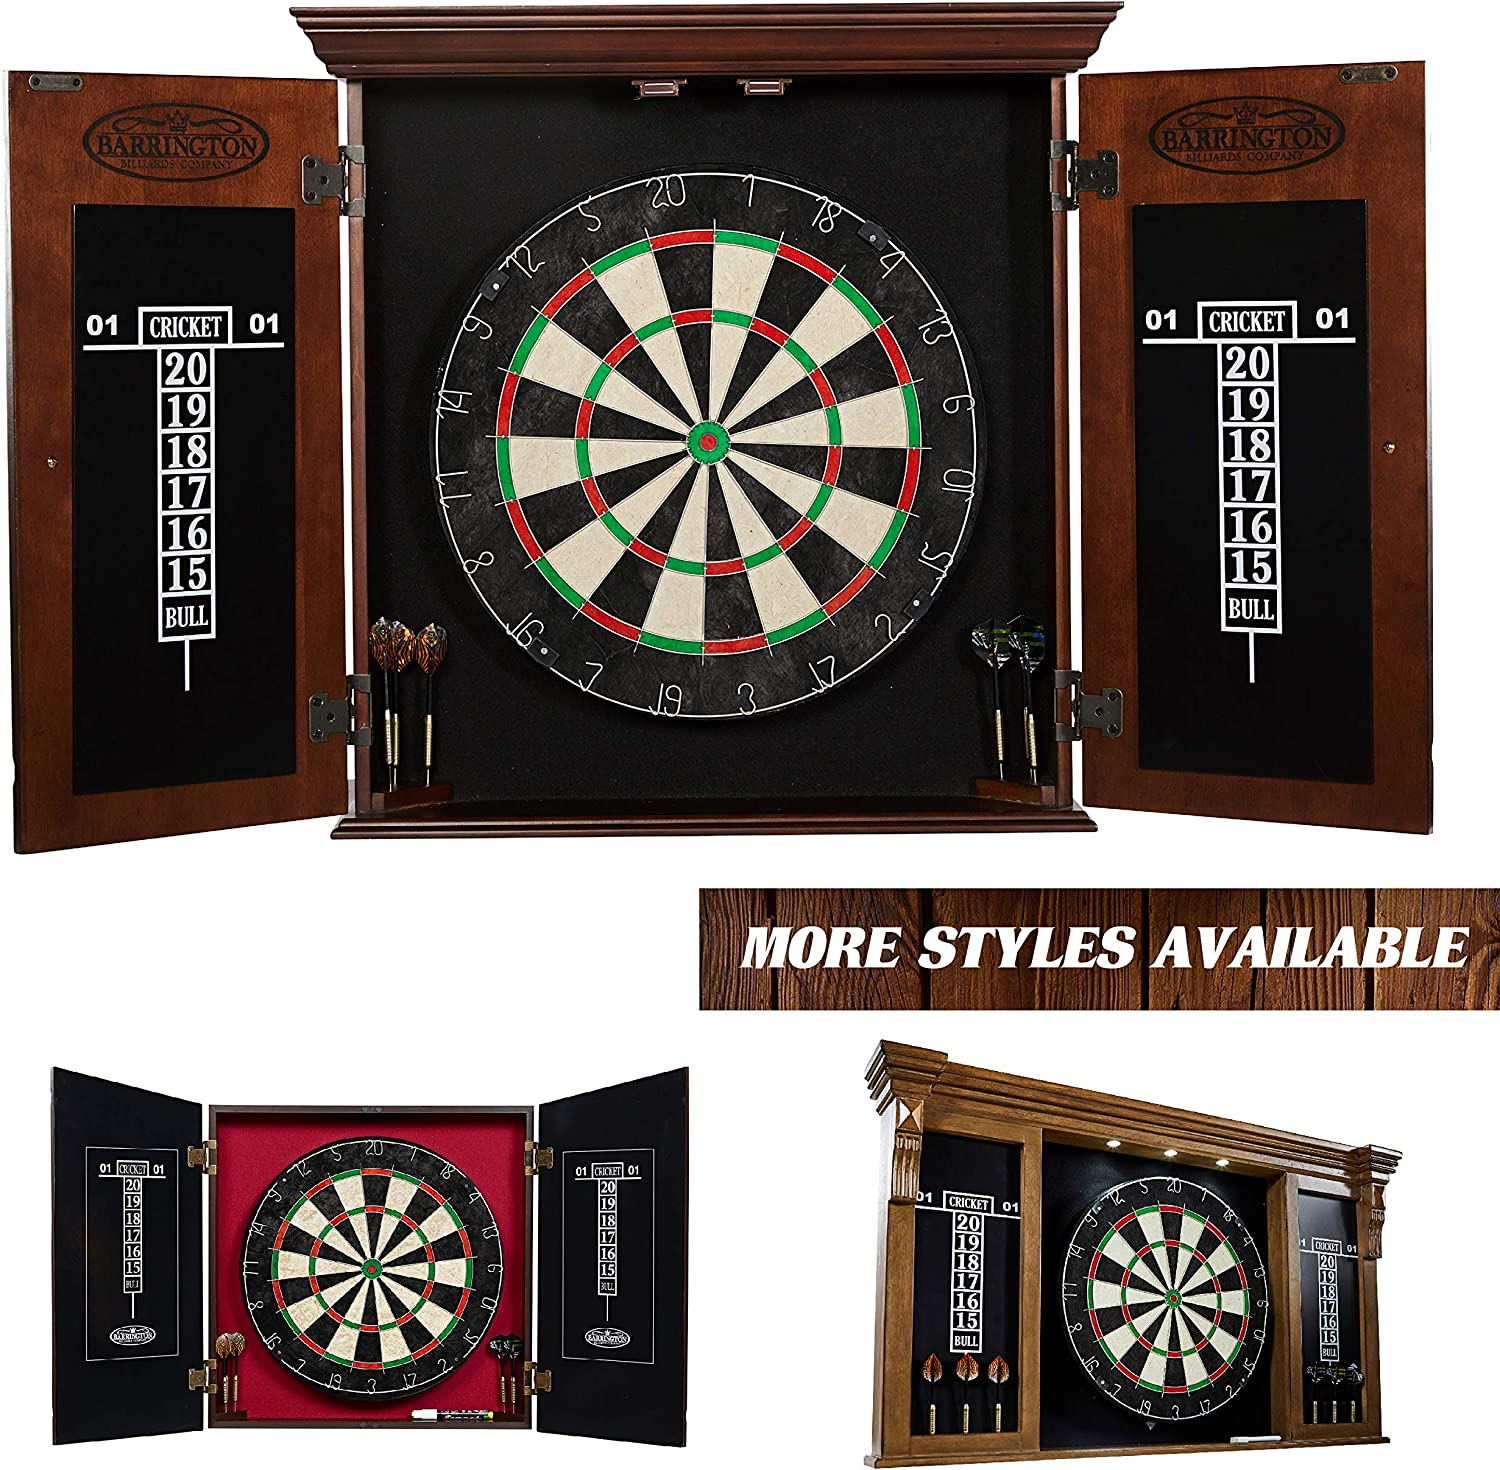 Barrington Bristle Dartboard Cabinet Set: Professional Hanging Classic Sisal Dartboard with Self Healing Bristles and Accessories : Sports & Outdoors